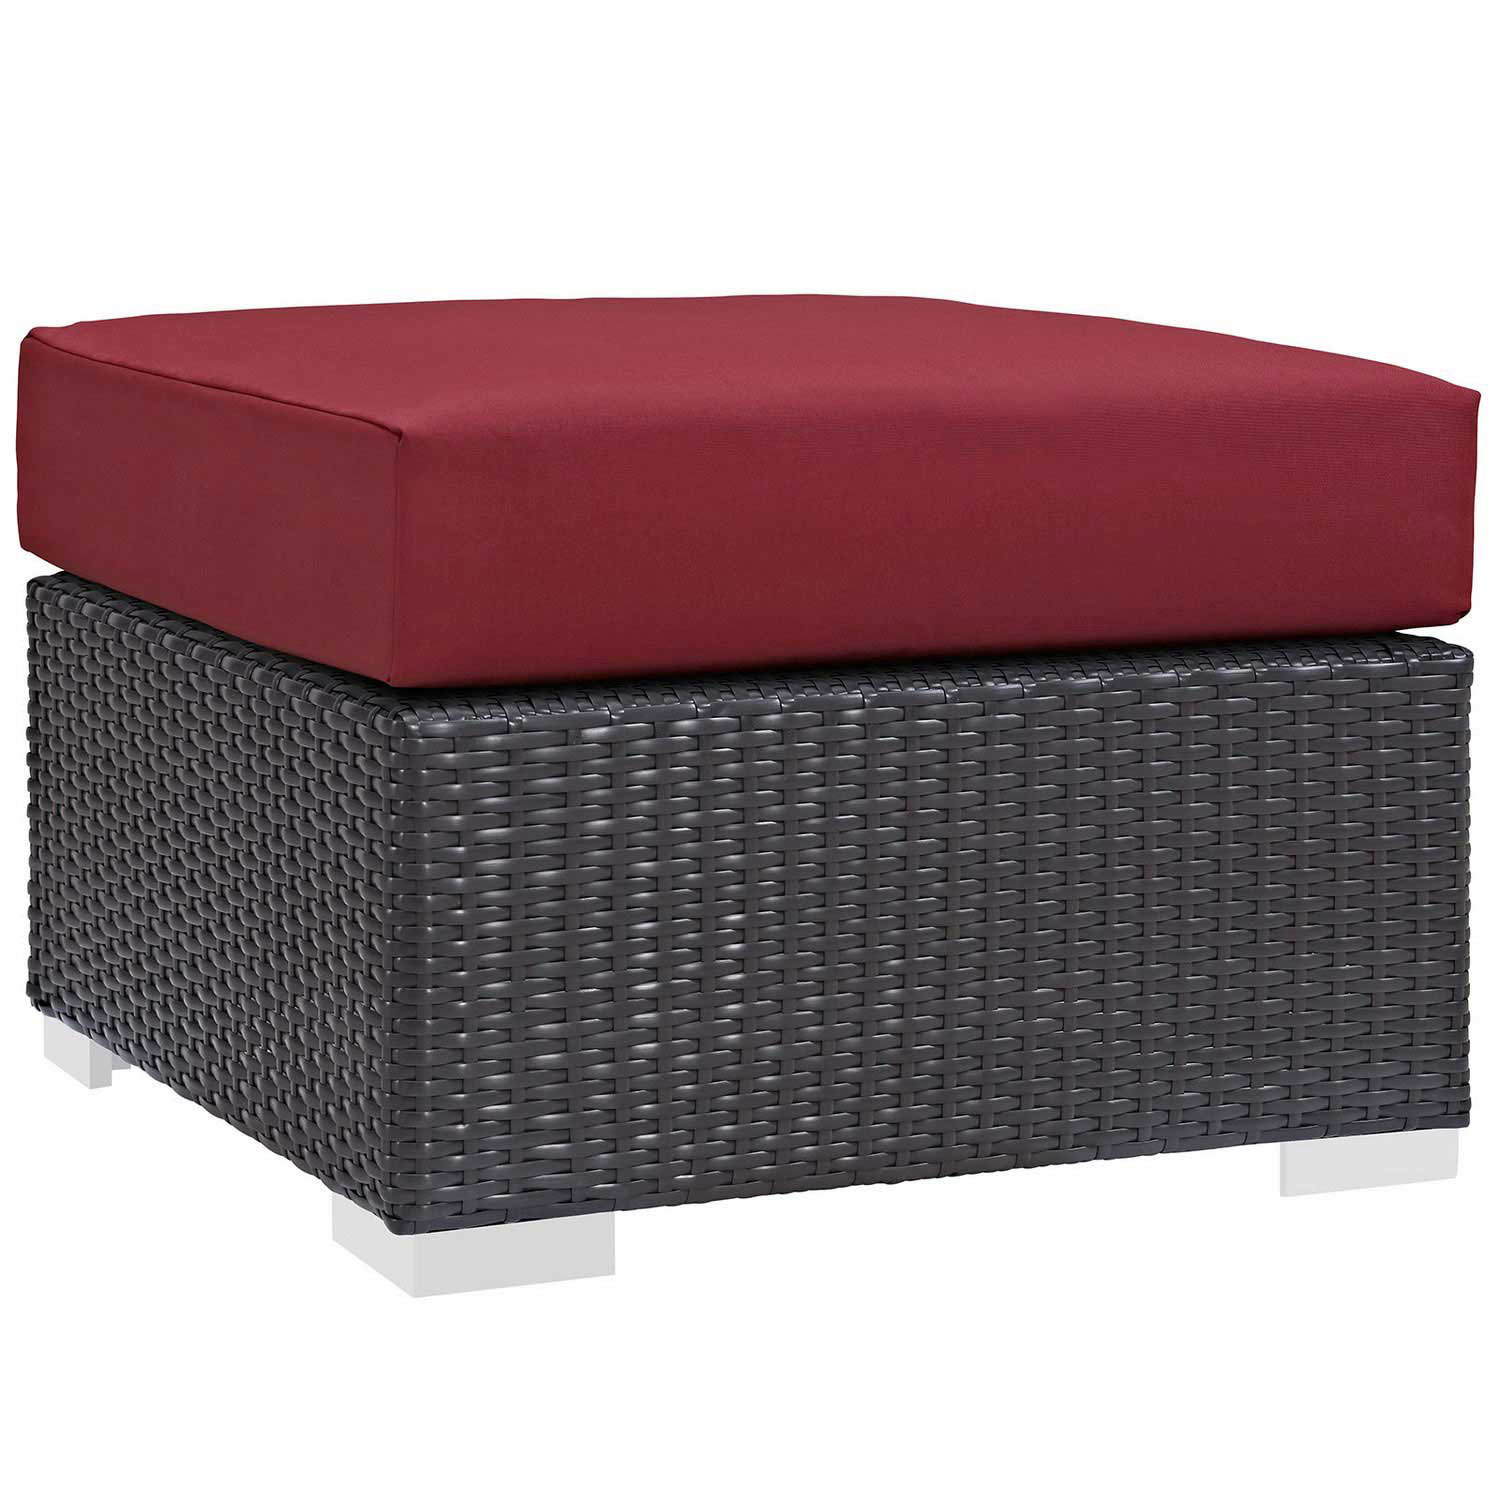 Modway Convene Outdoor Patio Fabric Square Ottoman - Espresso Red Espresso Red